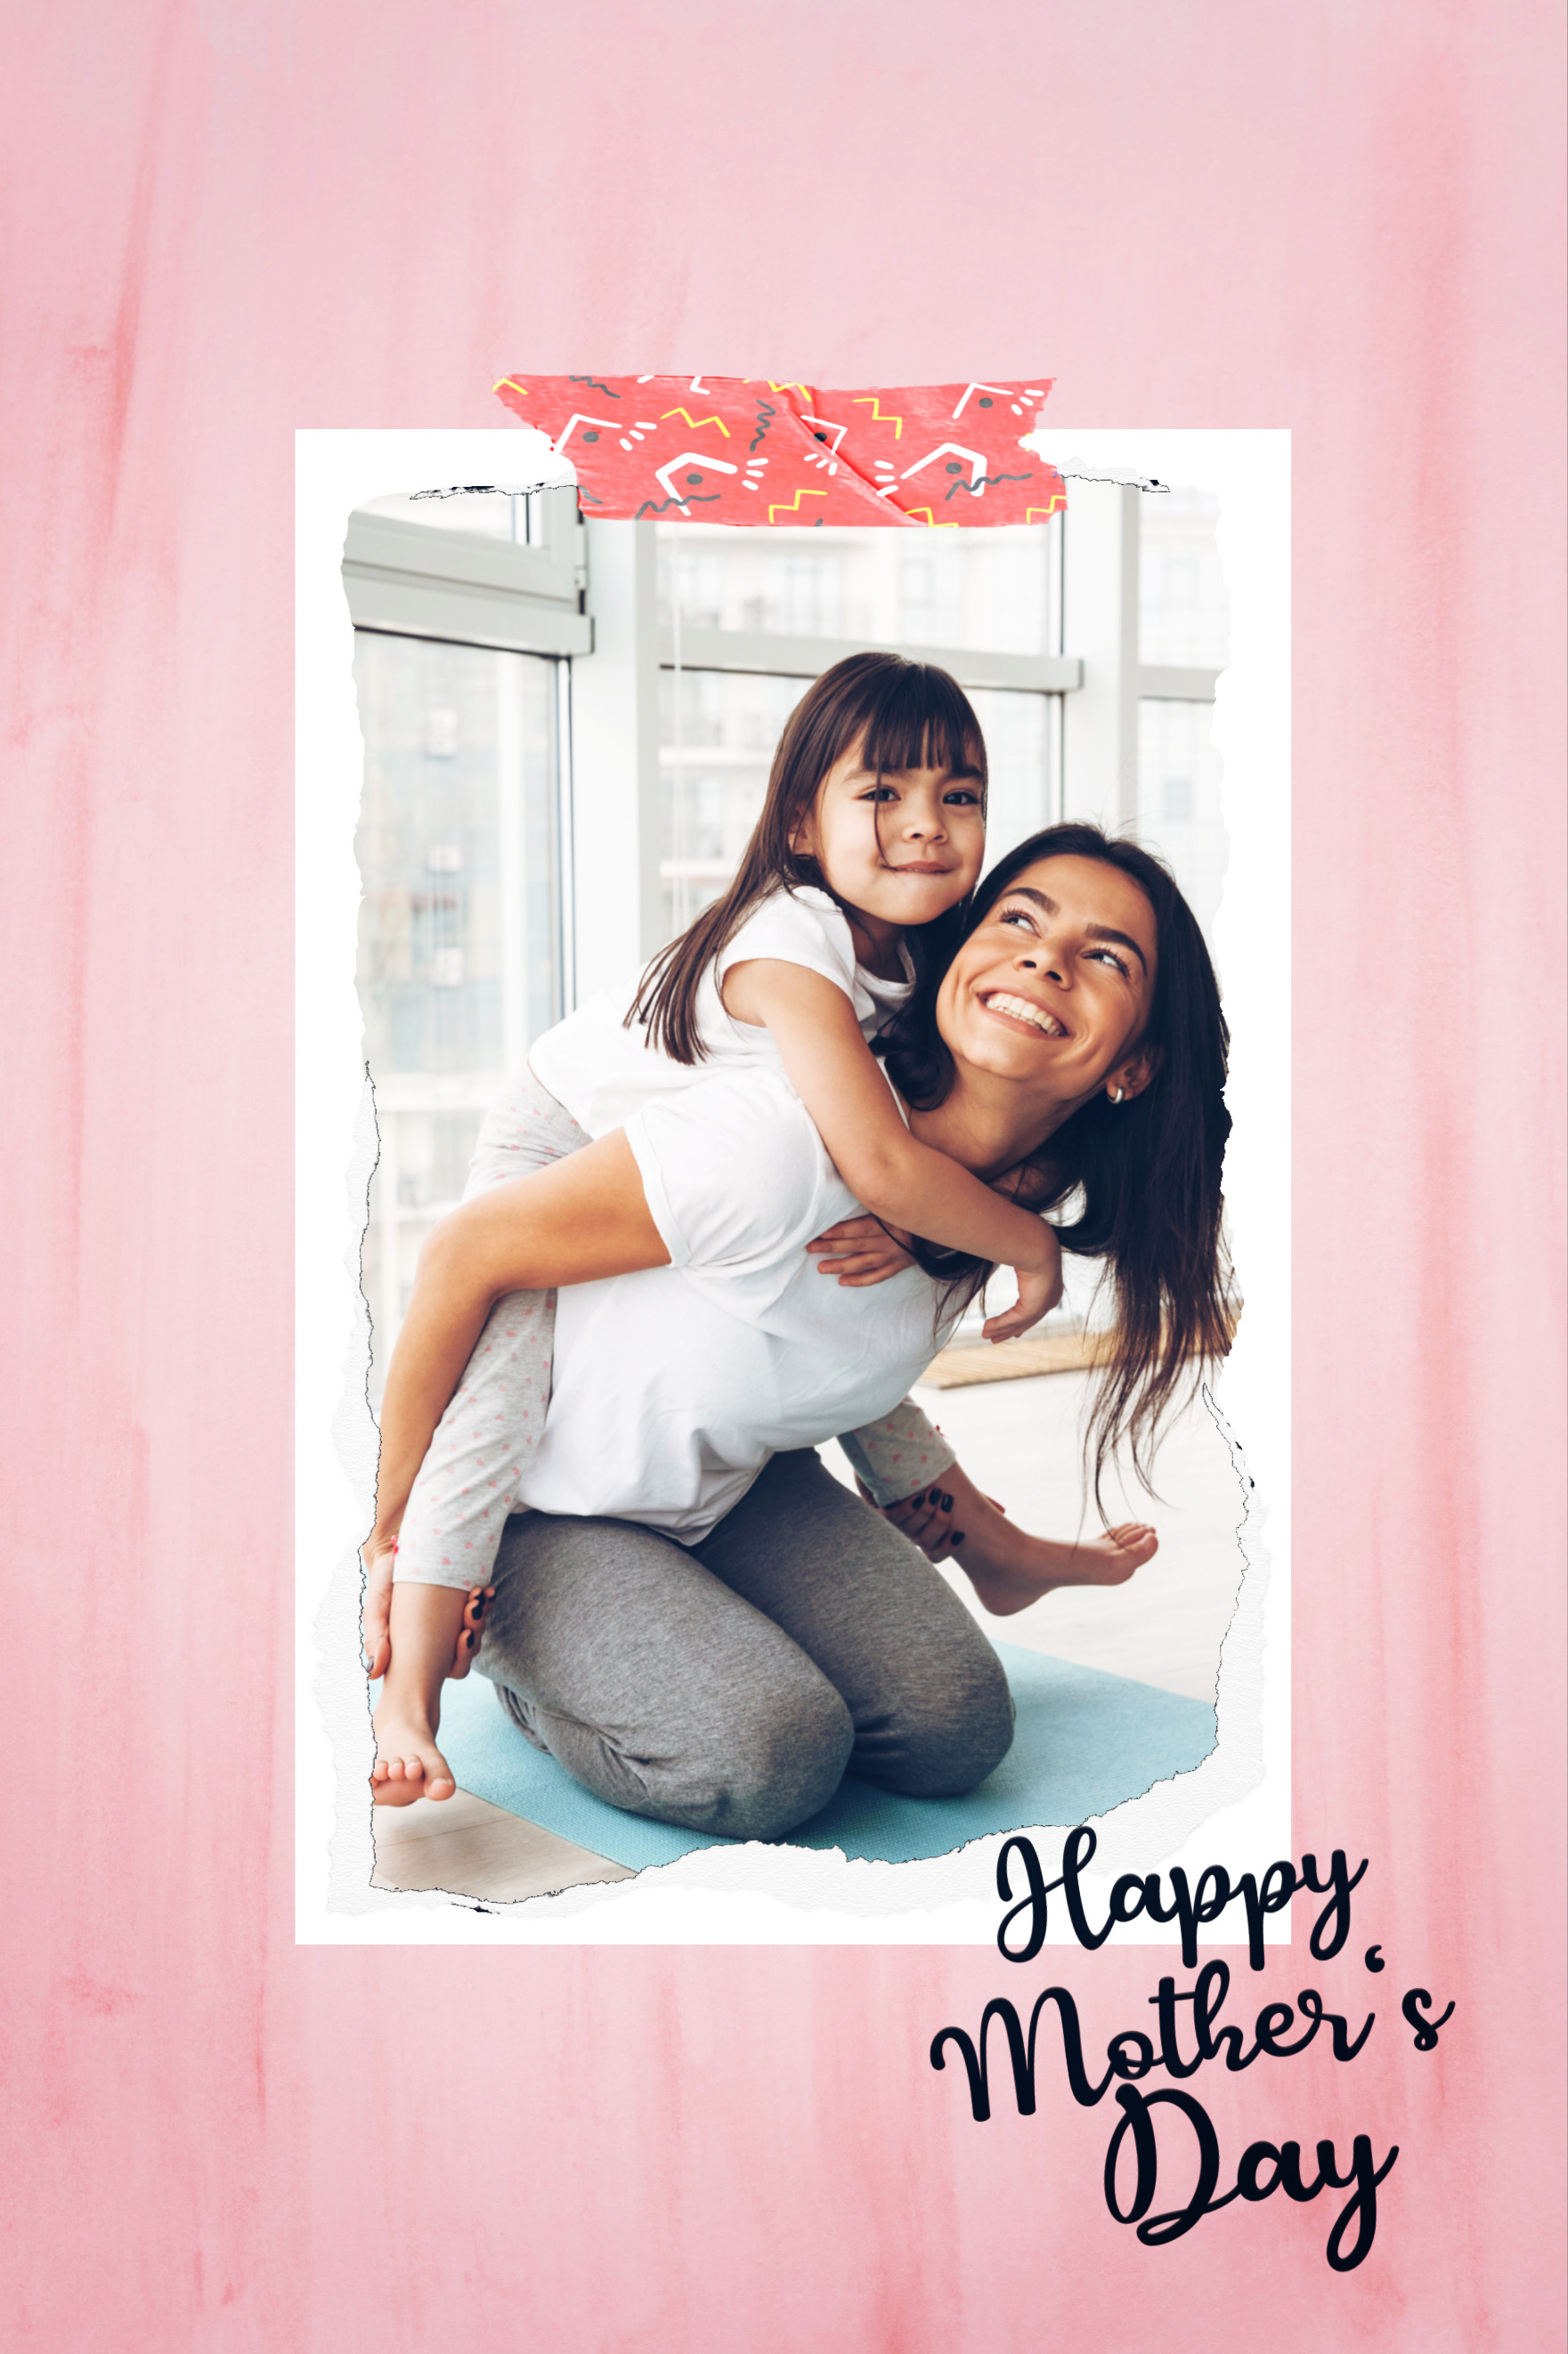 #freetoedit #mothersday #template #mom #mama #lovemommy